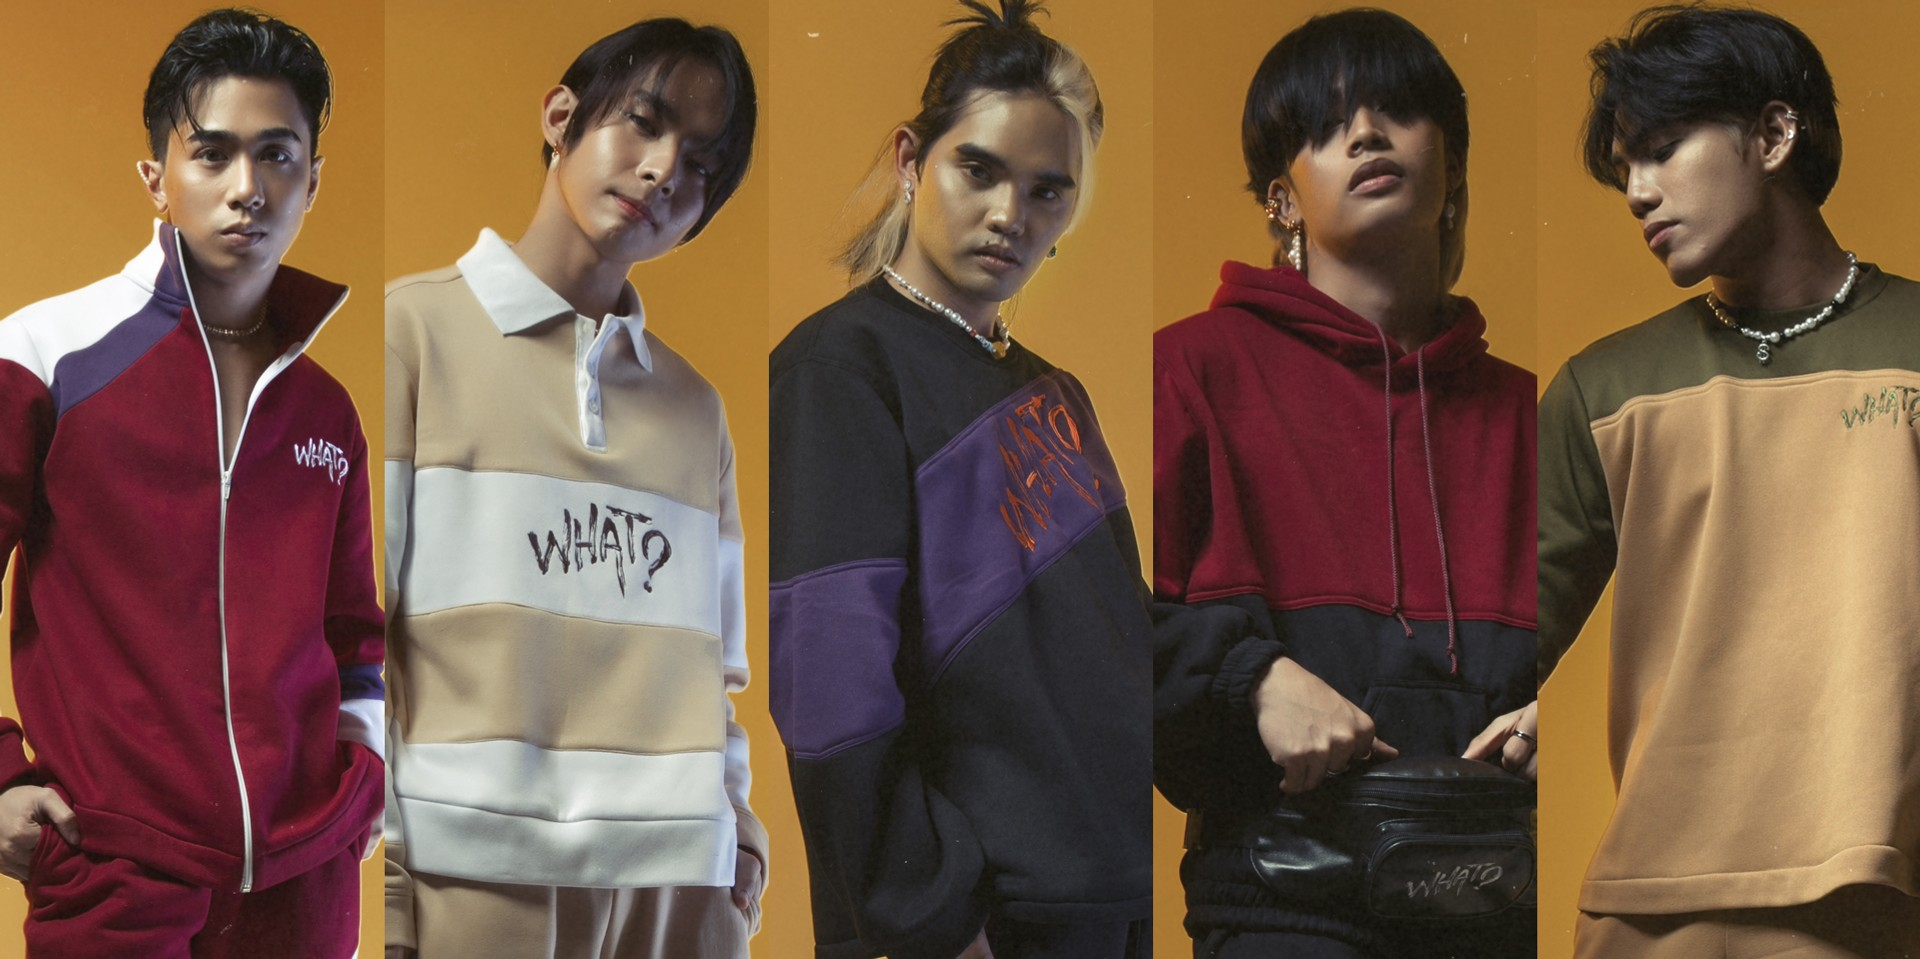 SB19 team up with fashion designer Chynna Mamawal for limited Premium Collection merch